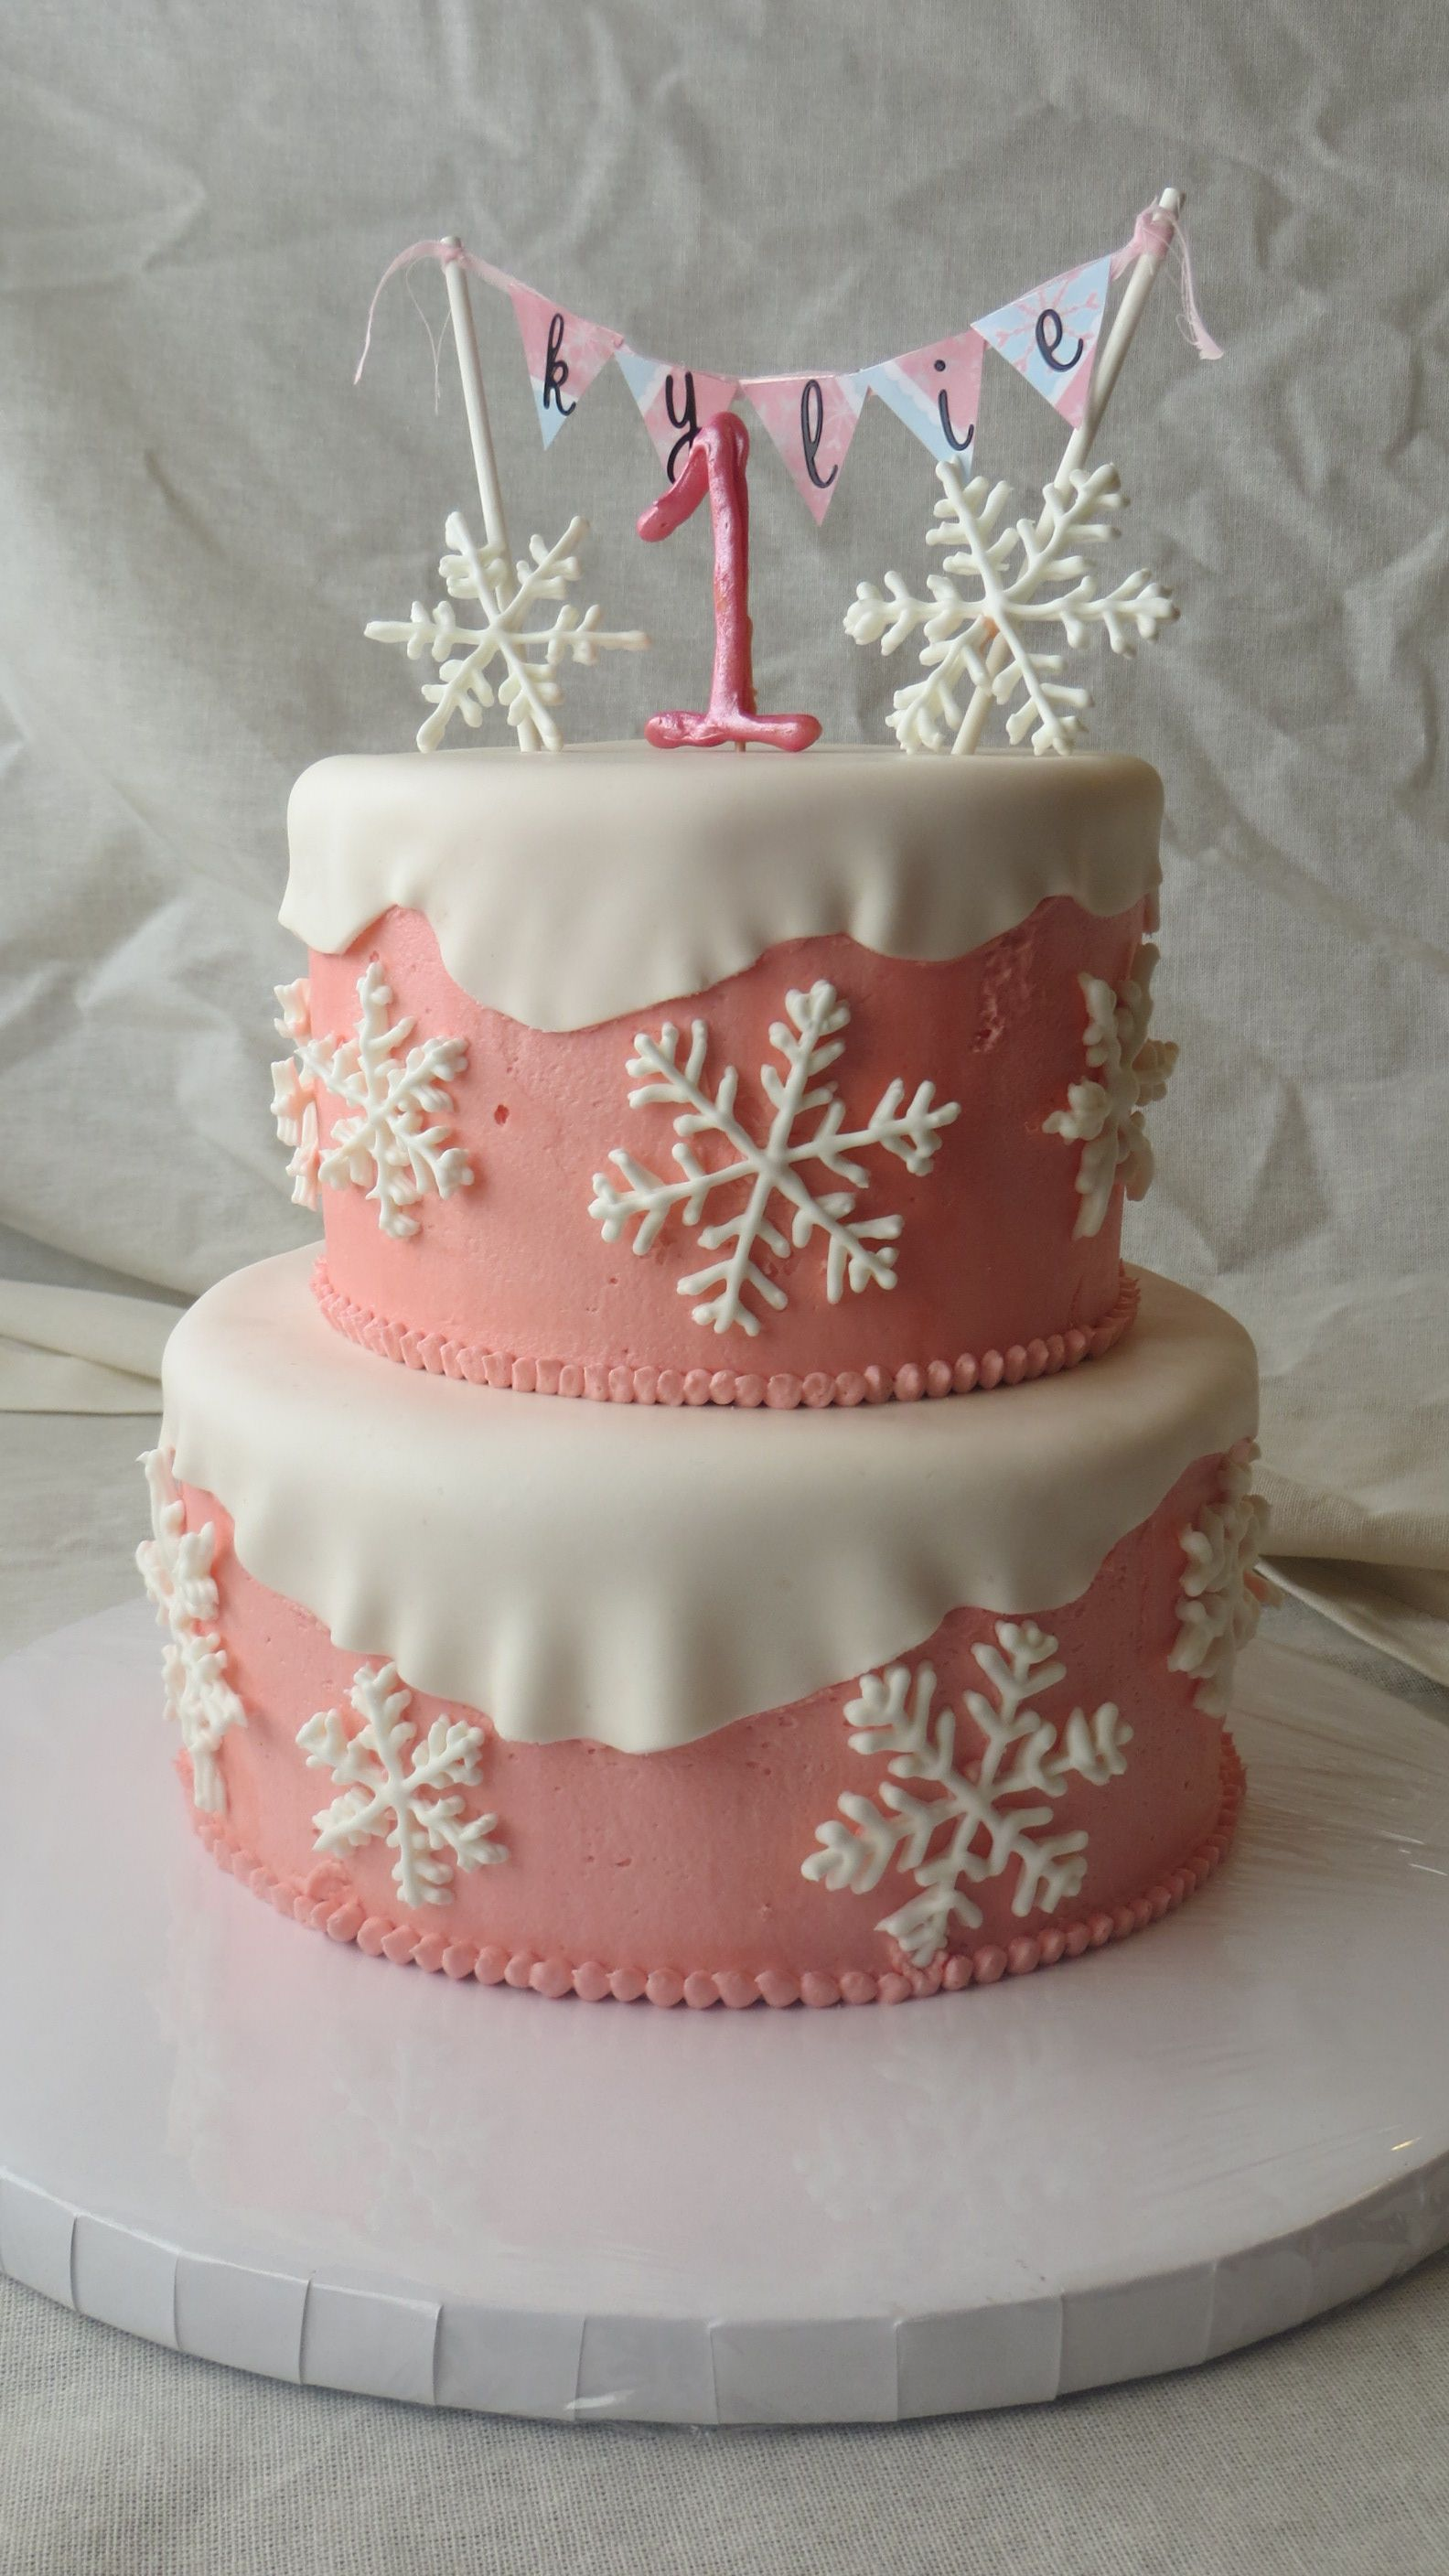 Birthday Cakes Winter Onederland Cake Royal Icing Snowflakes